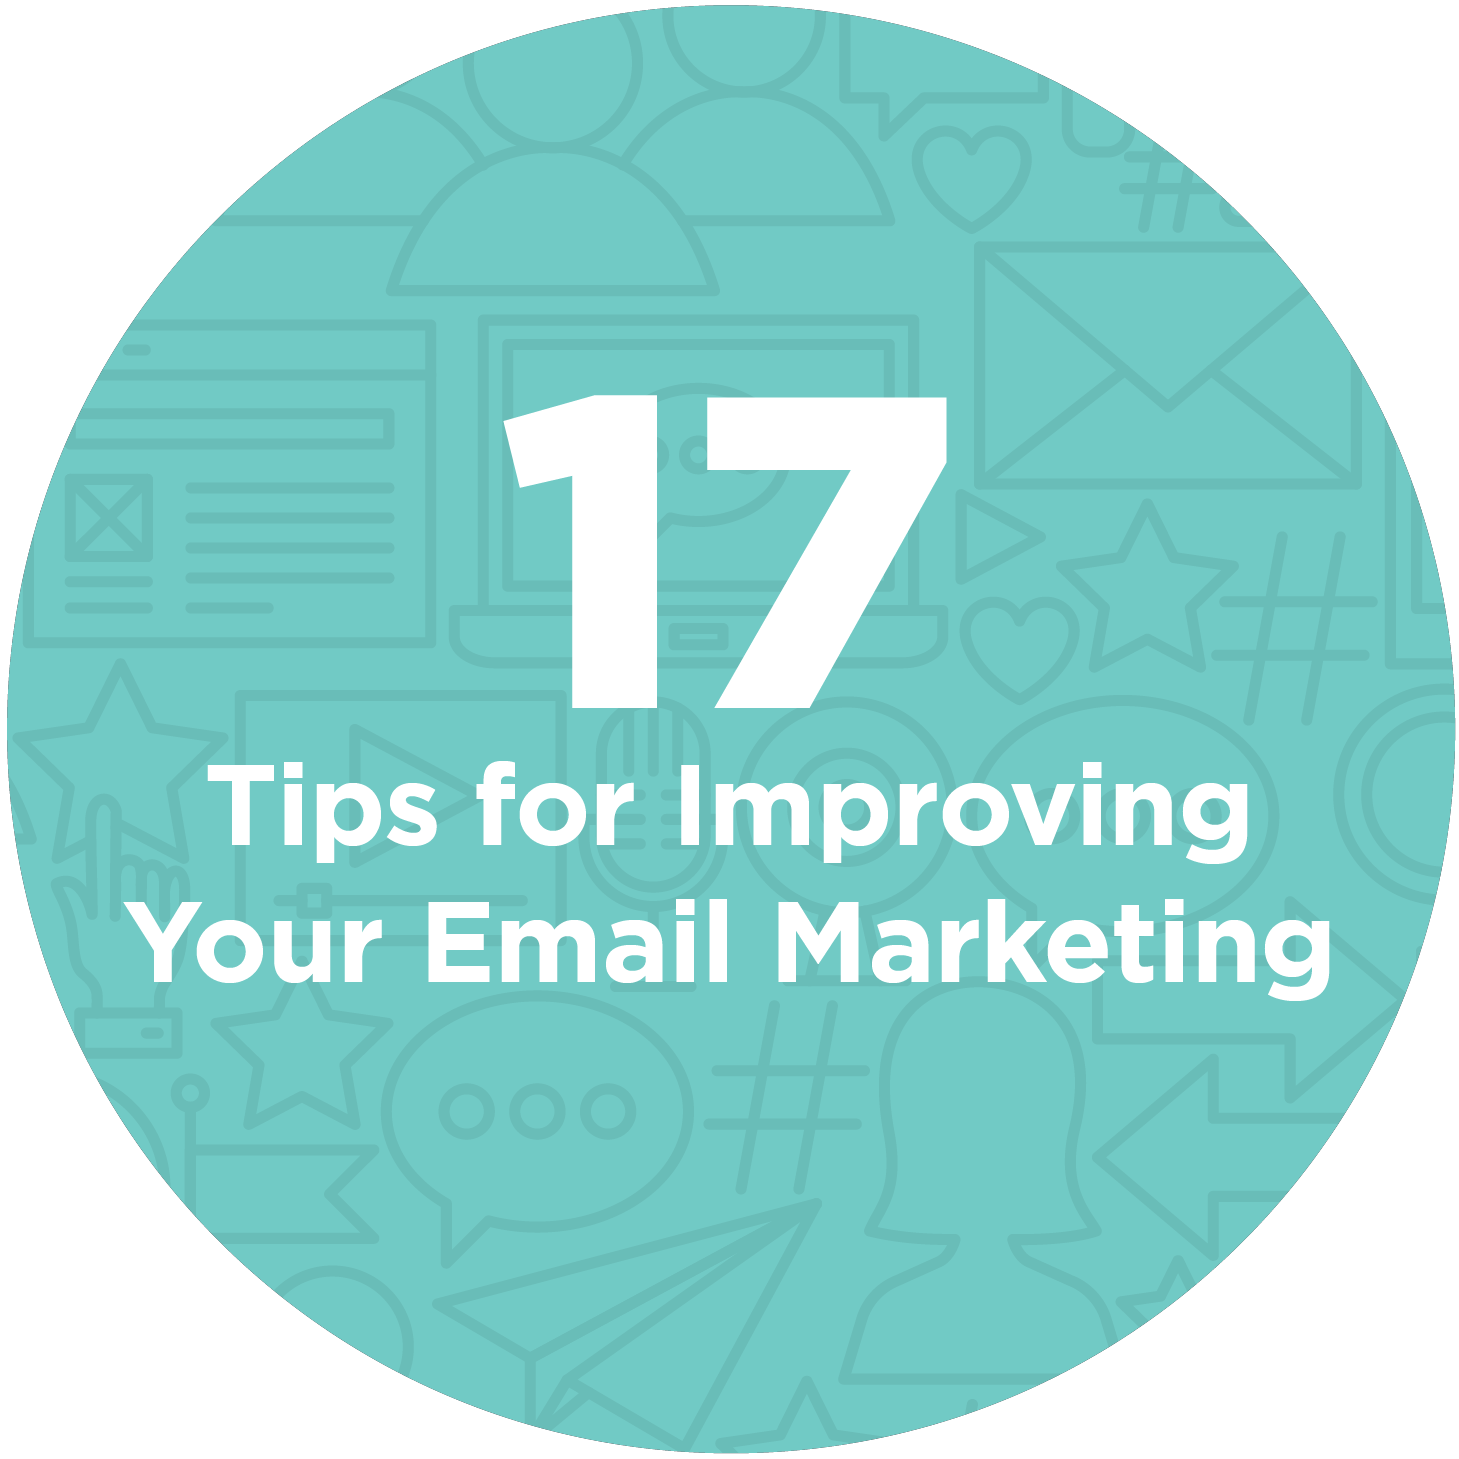 17 Best-Practice Tips for Improving Your Email Marketing